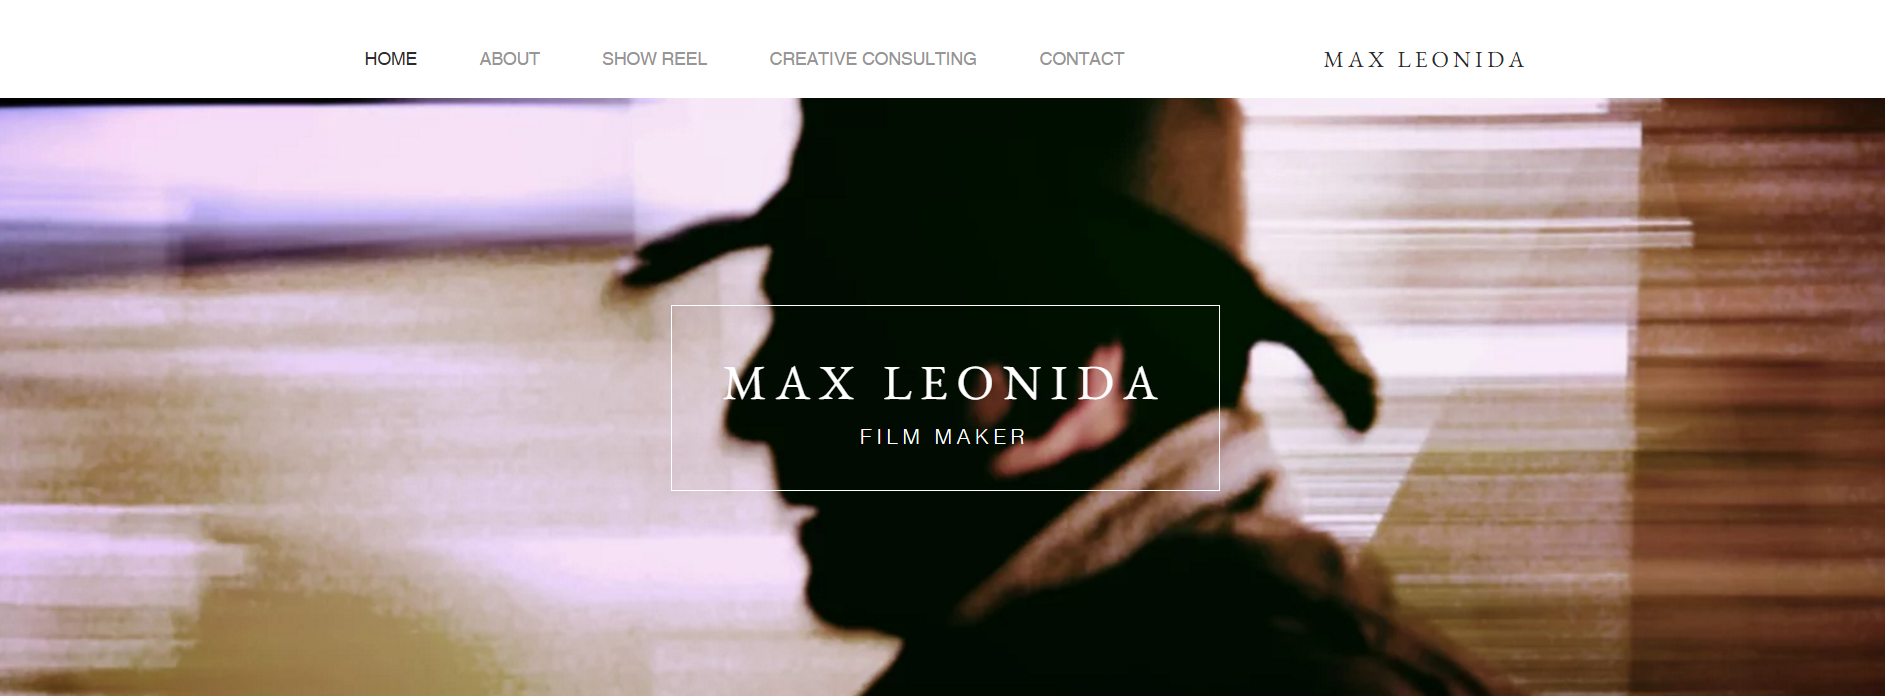 Featured Film Maker Max Leonida